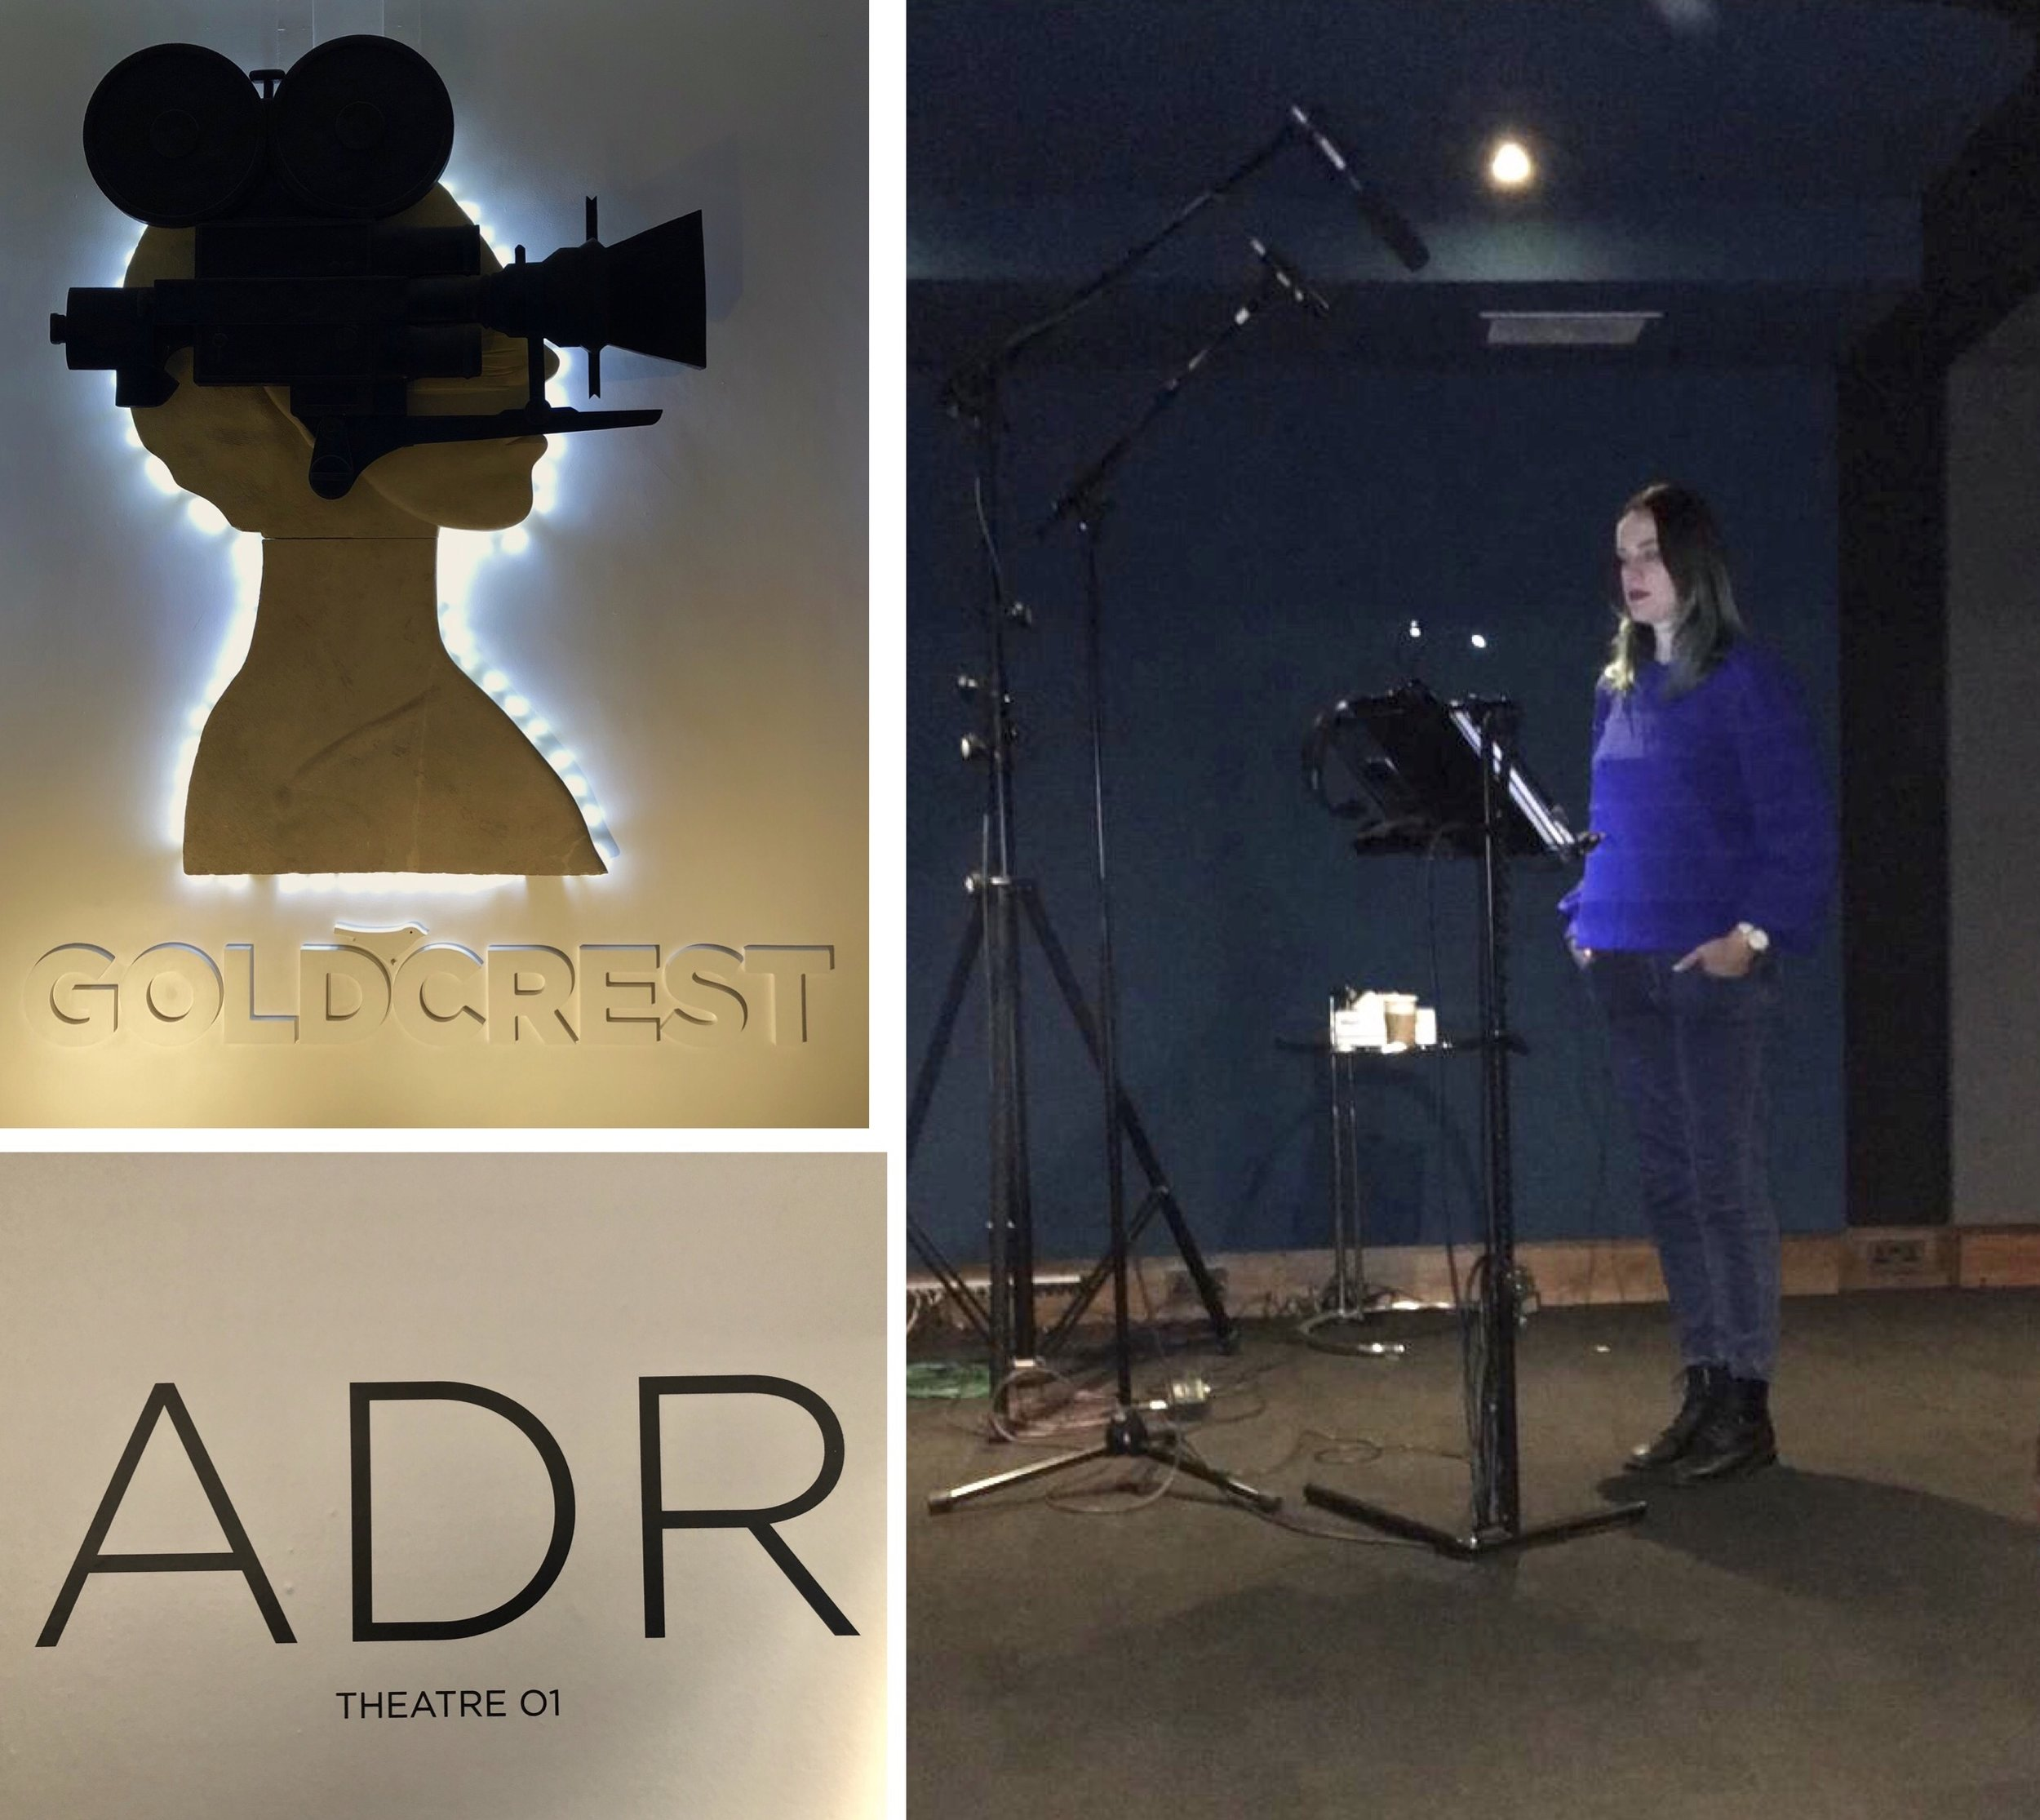 ADR Recording at Goldcrest Films - Voice-acting for the ITV-commissioned movie about the Olympic ice-skating winners Torvill and Dean.